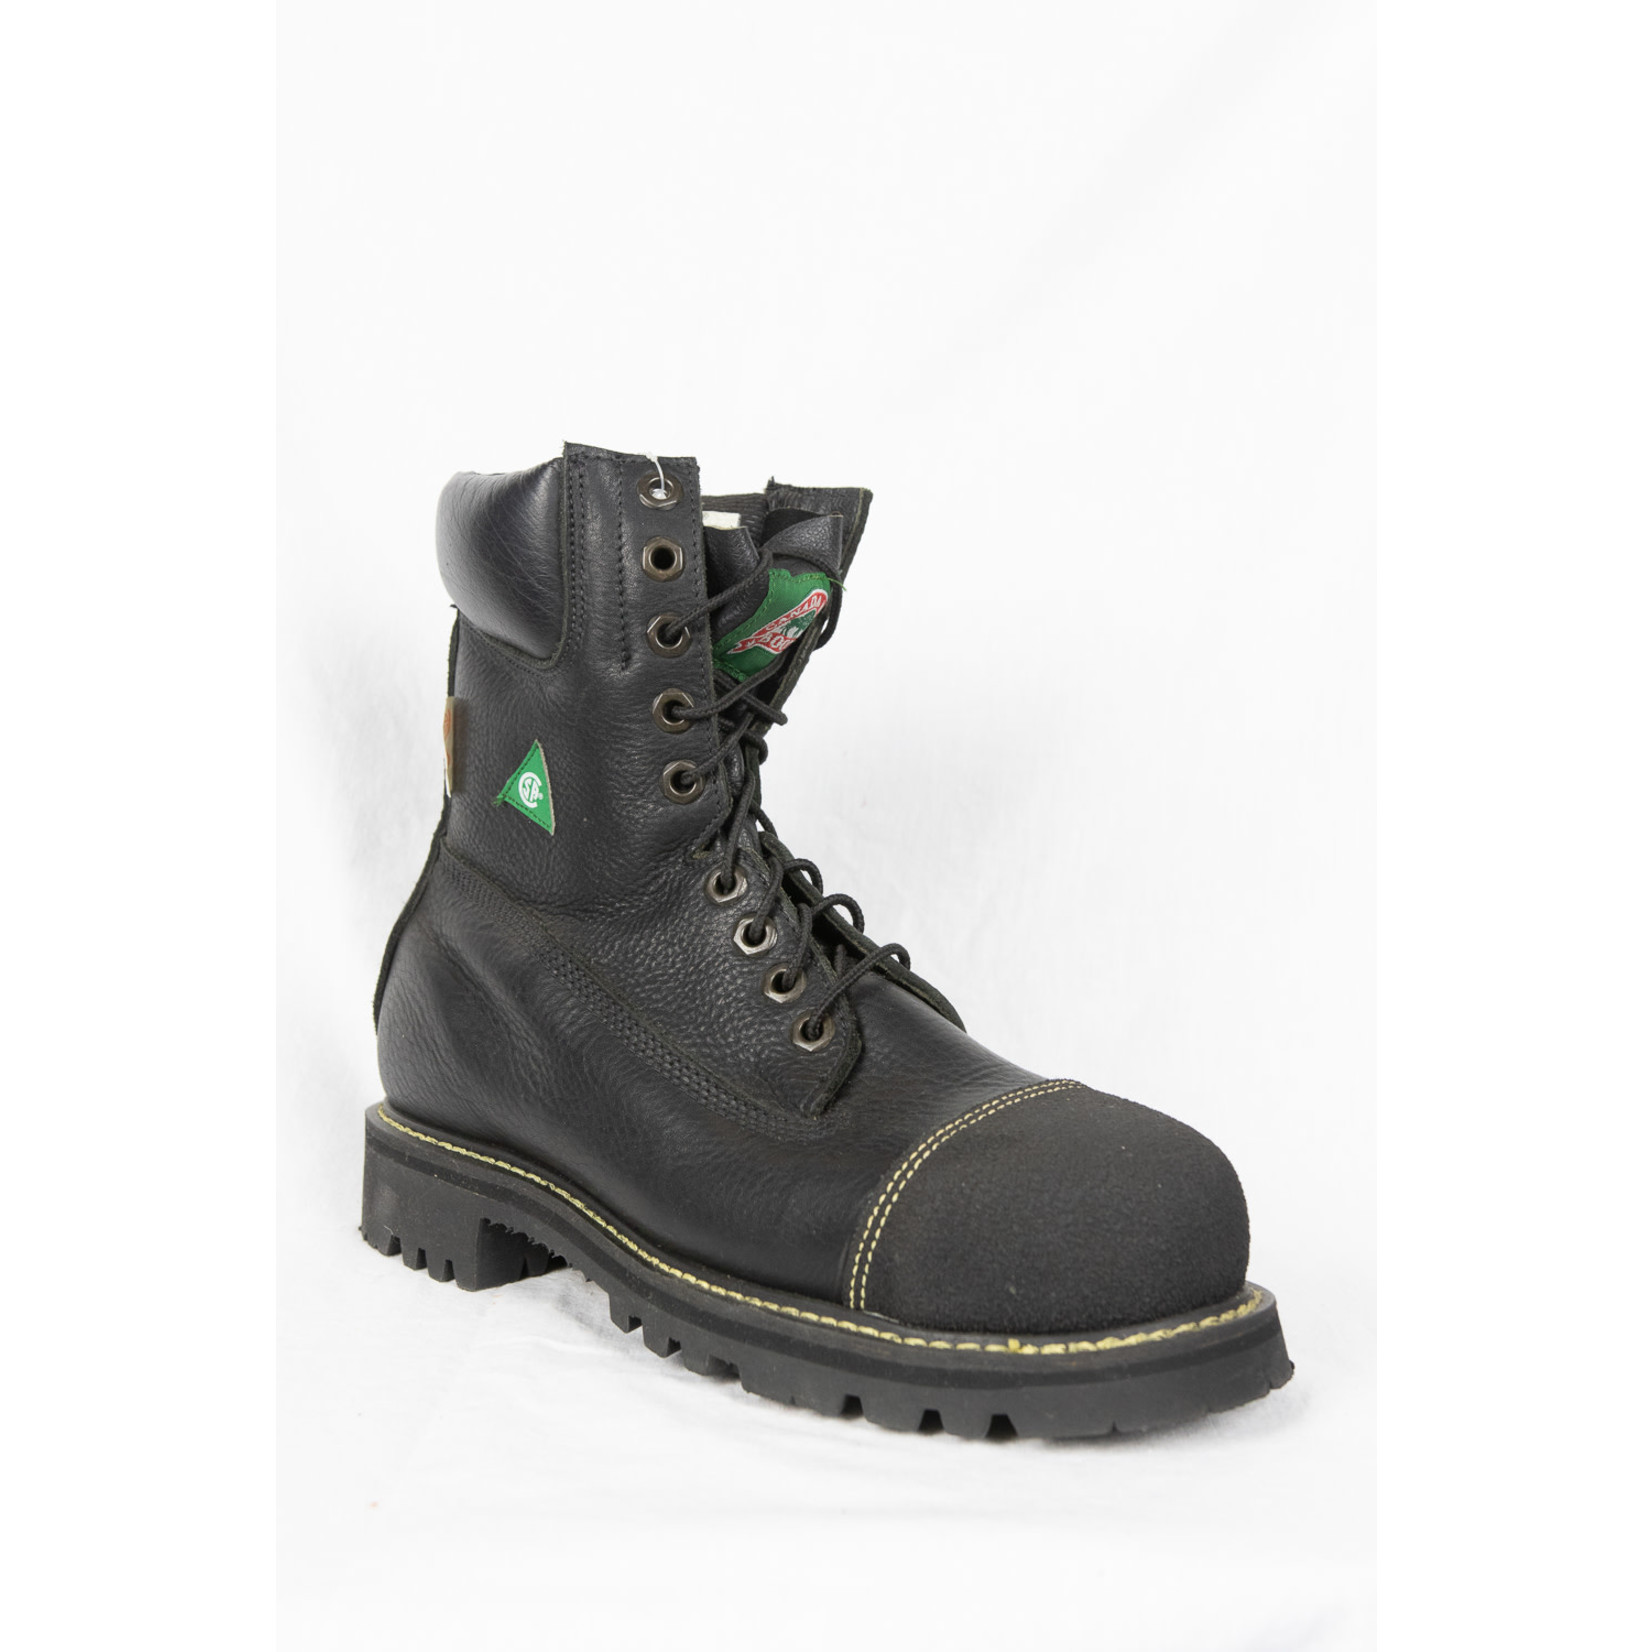 Canada West Canada West Men's Steel Toe Boot #34368 - SIZE 7.5